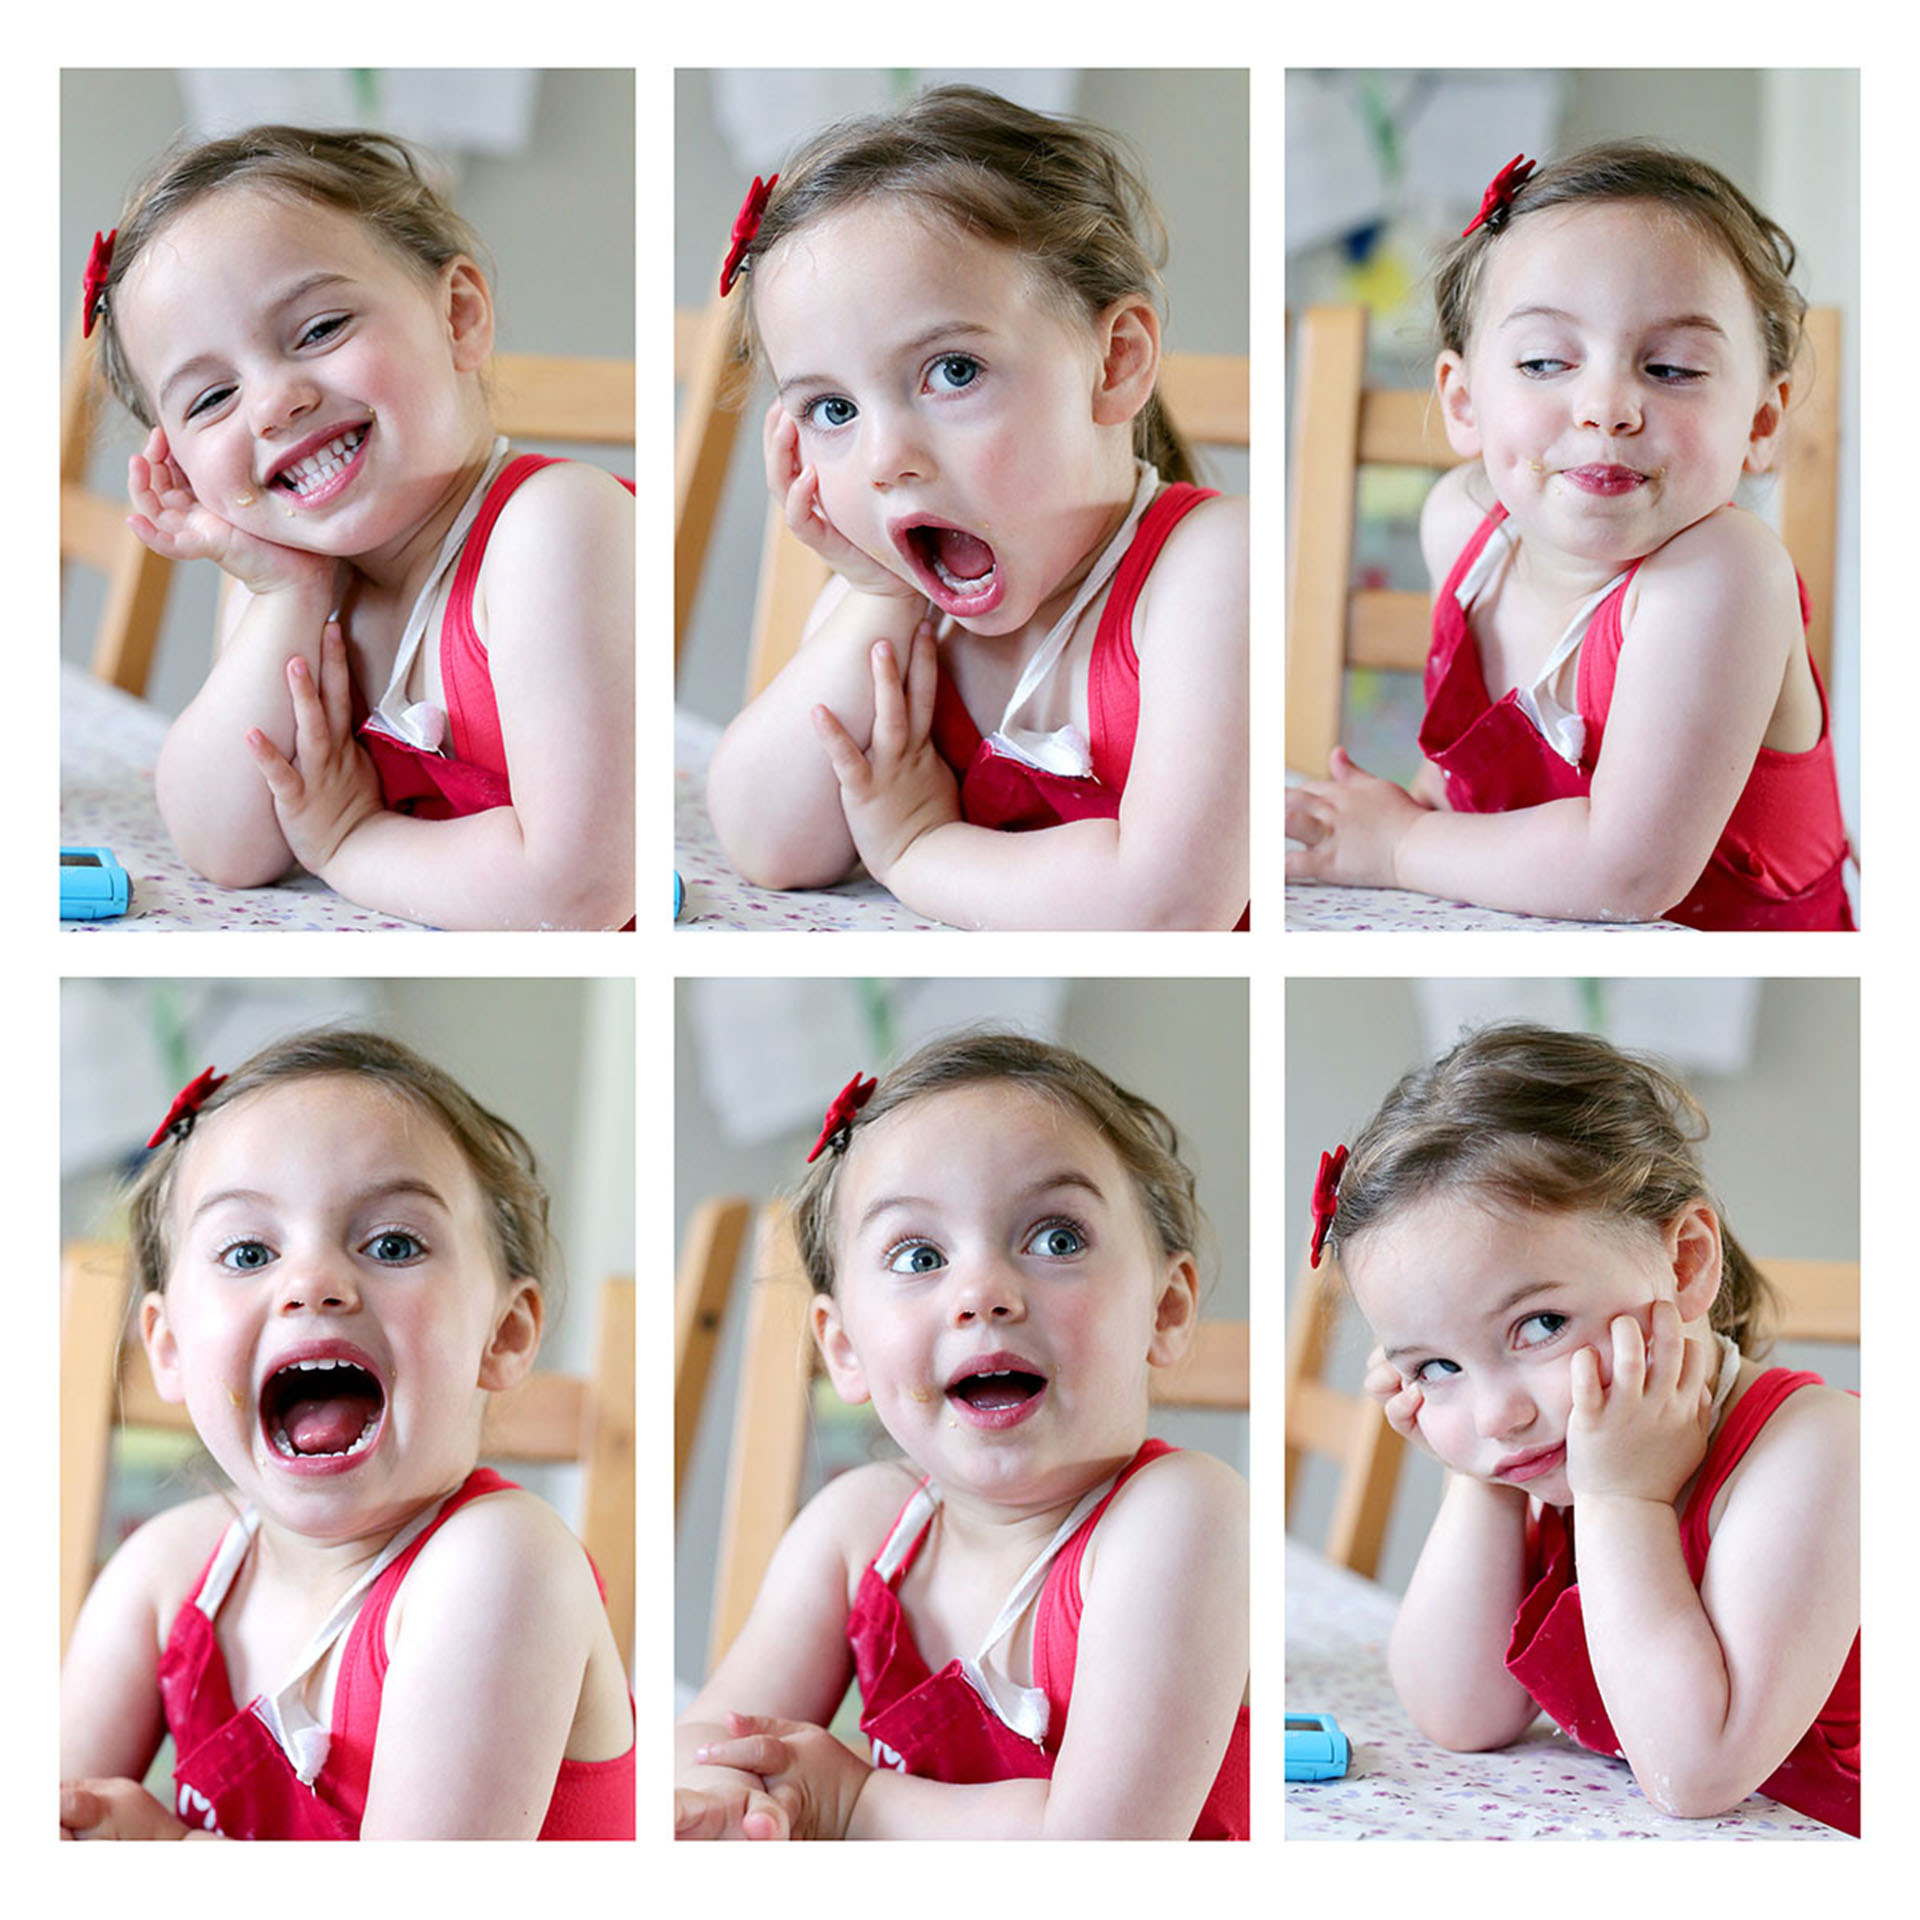 Montage of images of young girl